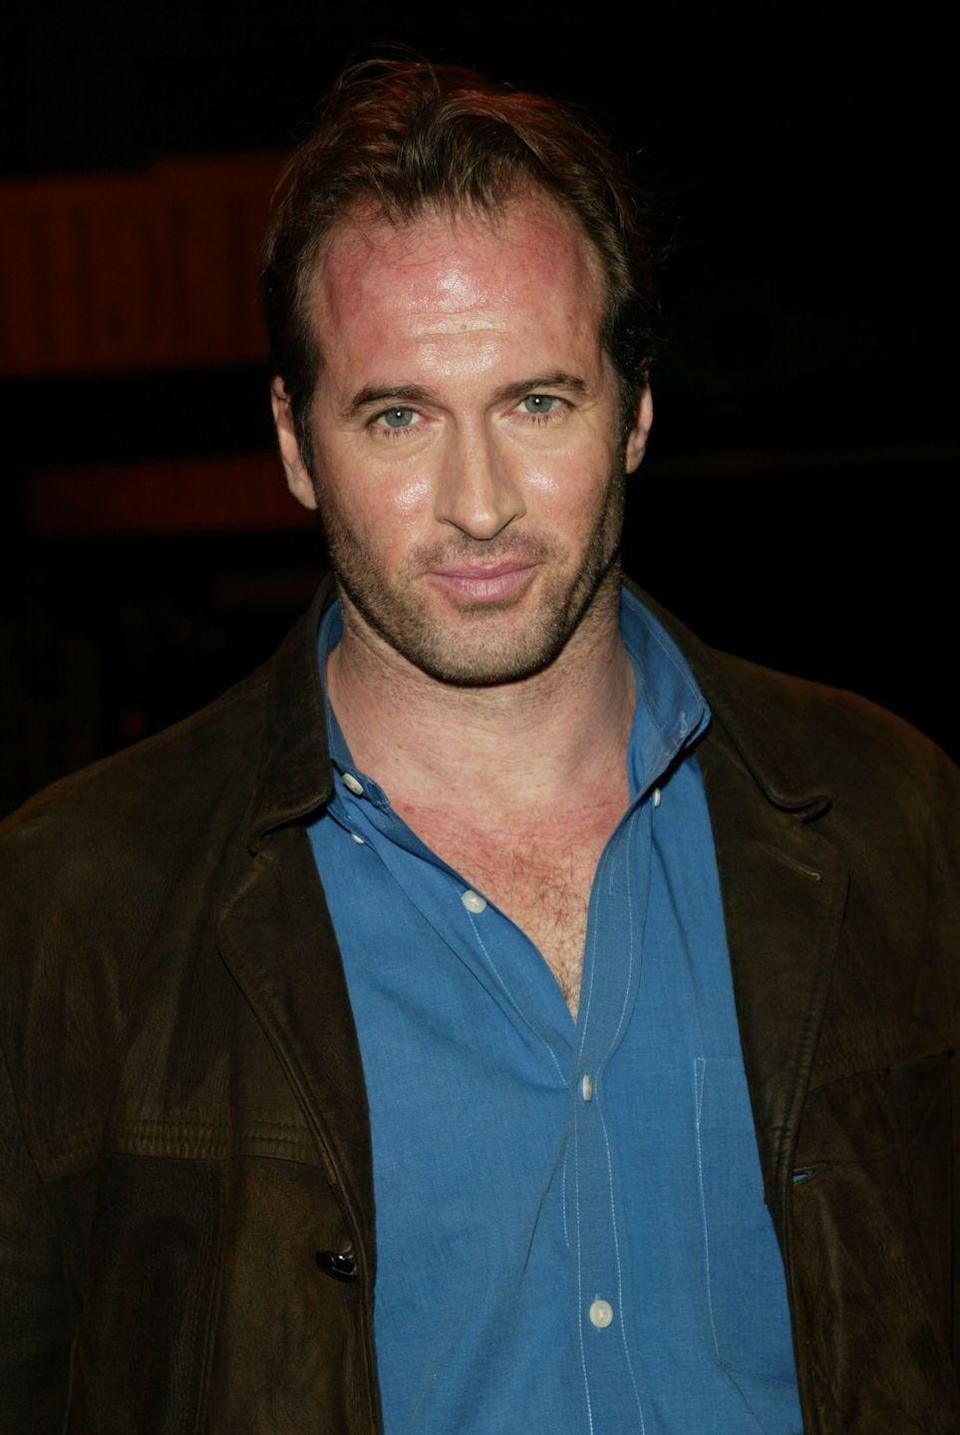 <p>Scott Patterson had small parts on hit shows like <em>Seinfeld </em>and <em>Will And Grace </em>before he was cast as the grumpy diner owner, Luke Danes, on the Warner Brothers show. </p>